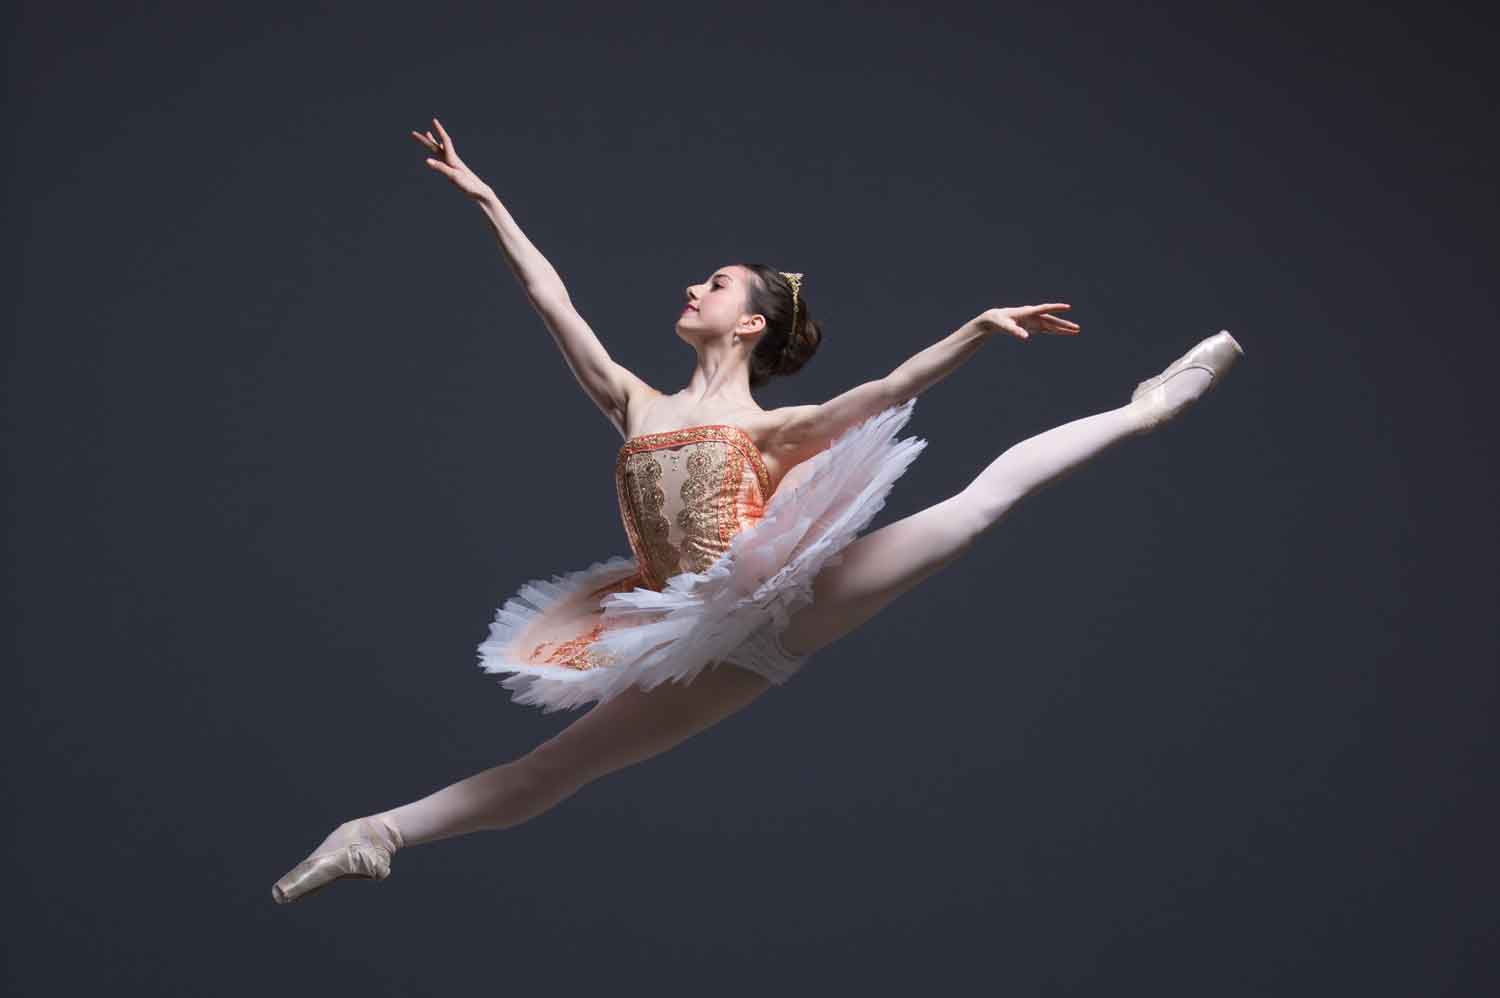 Ballet-Central-The-Nutcracker,-Sugar-Plum-Fairy-Dancer-Ayca-Anil-Photo-by-ASH-Photography-cropped